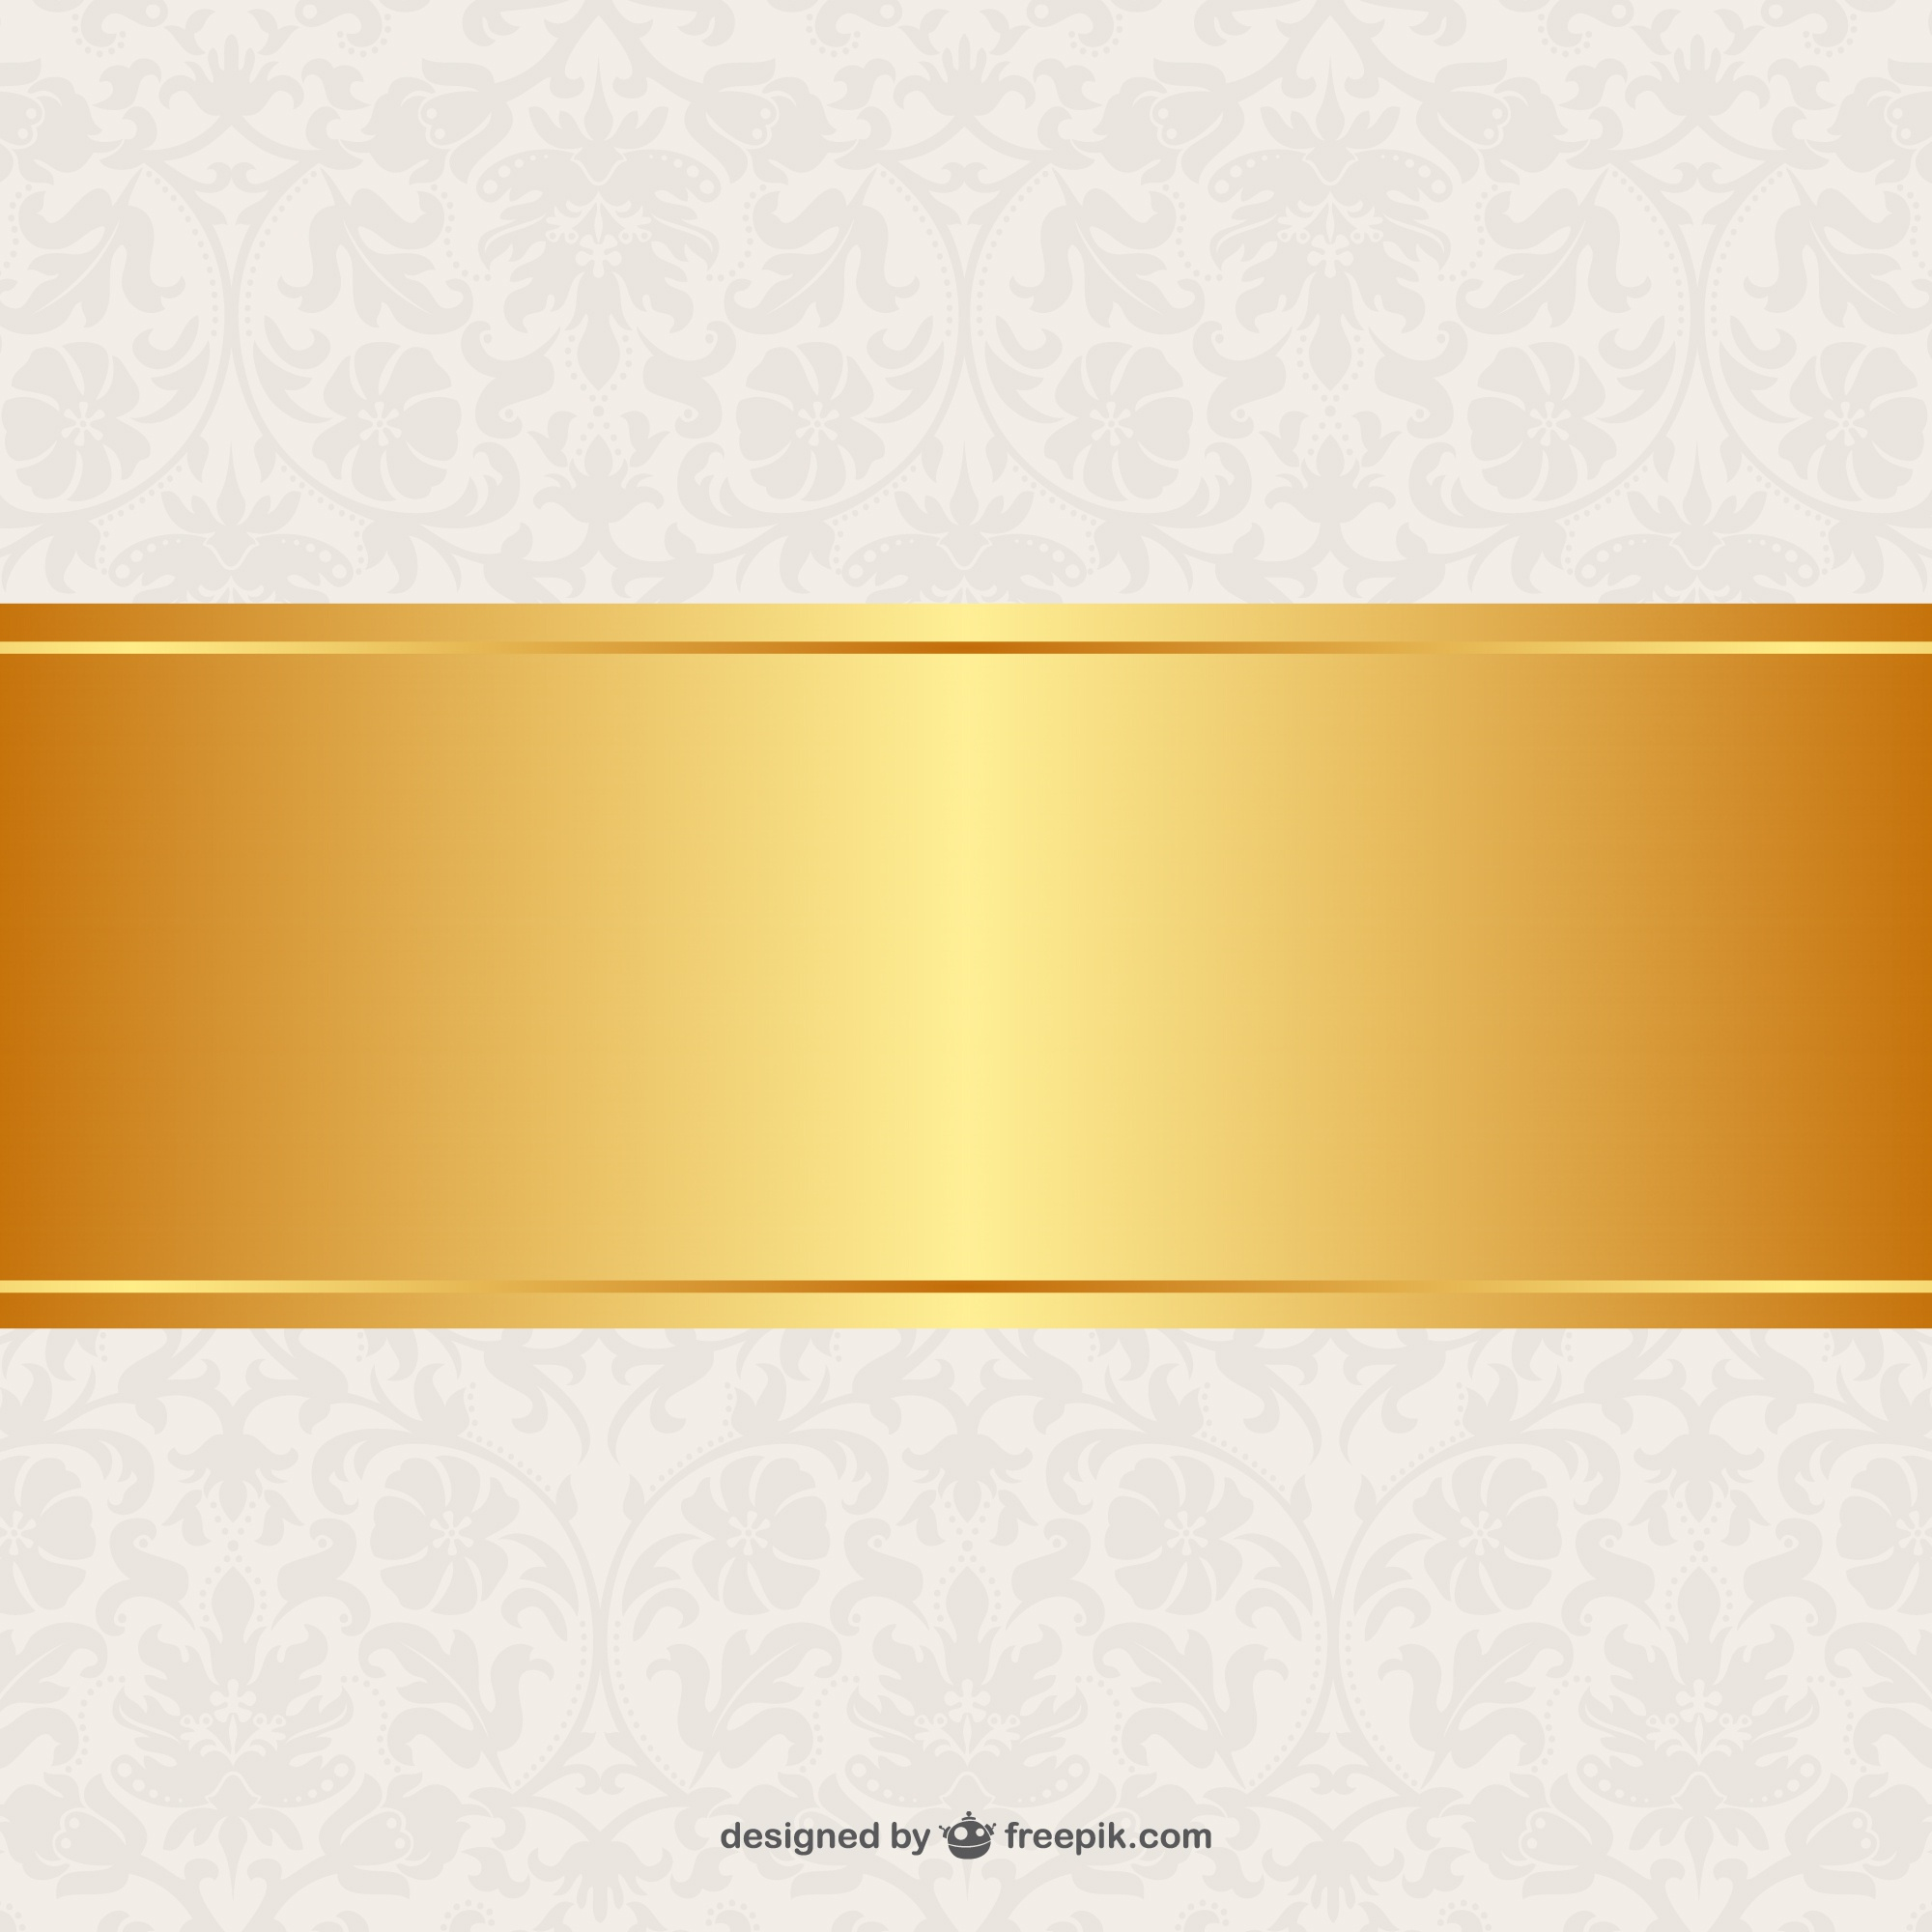 Floral background golden banner design